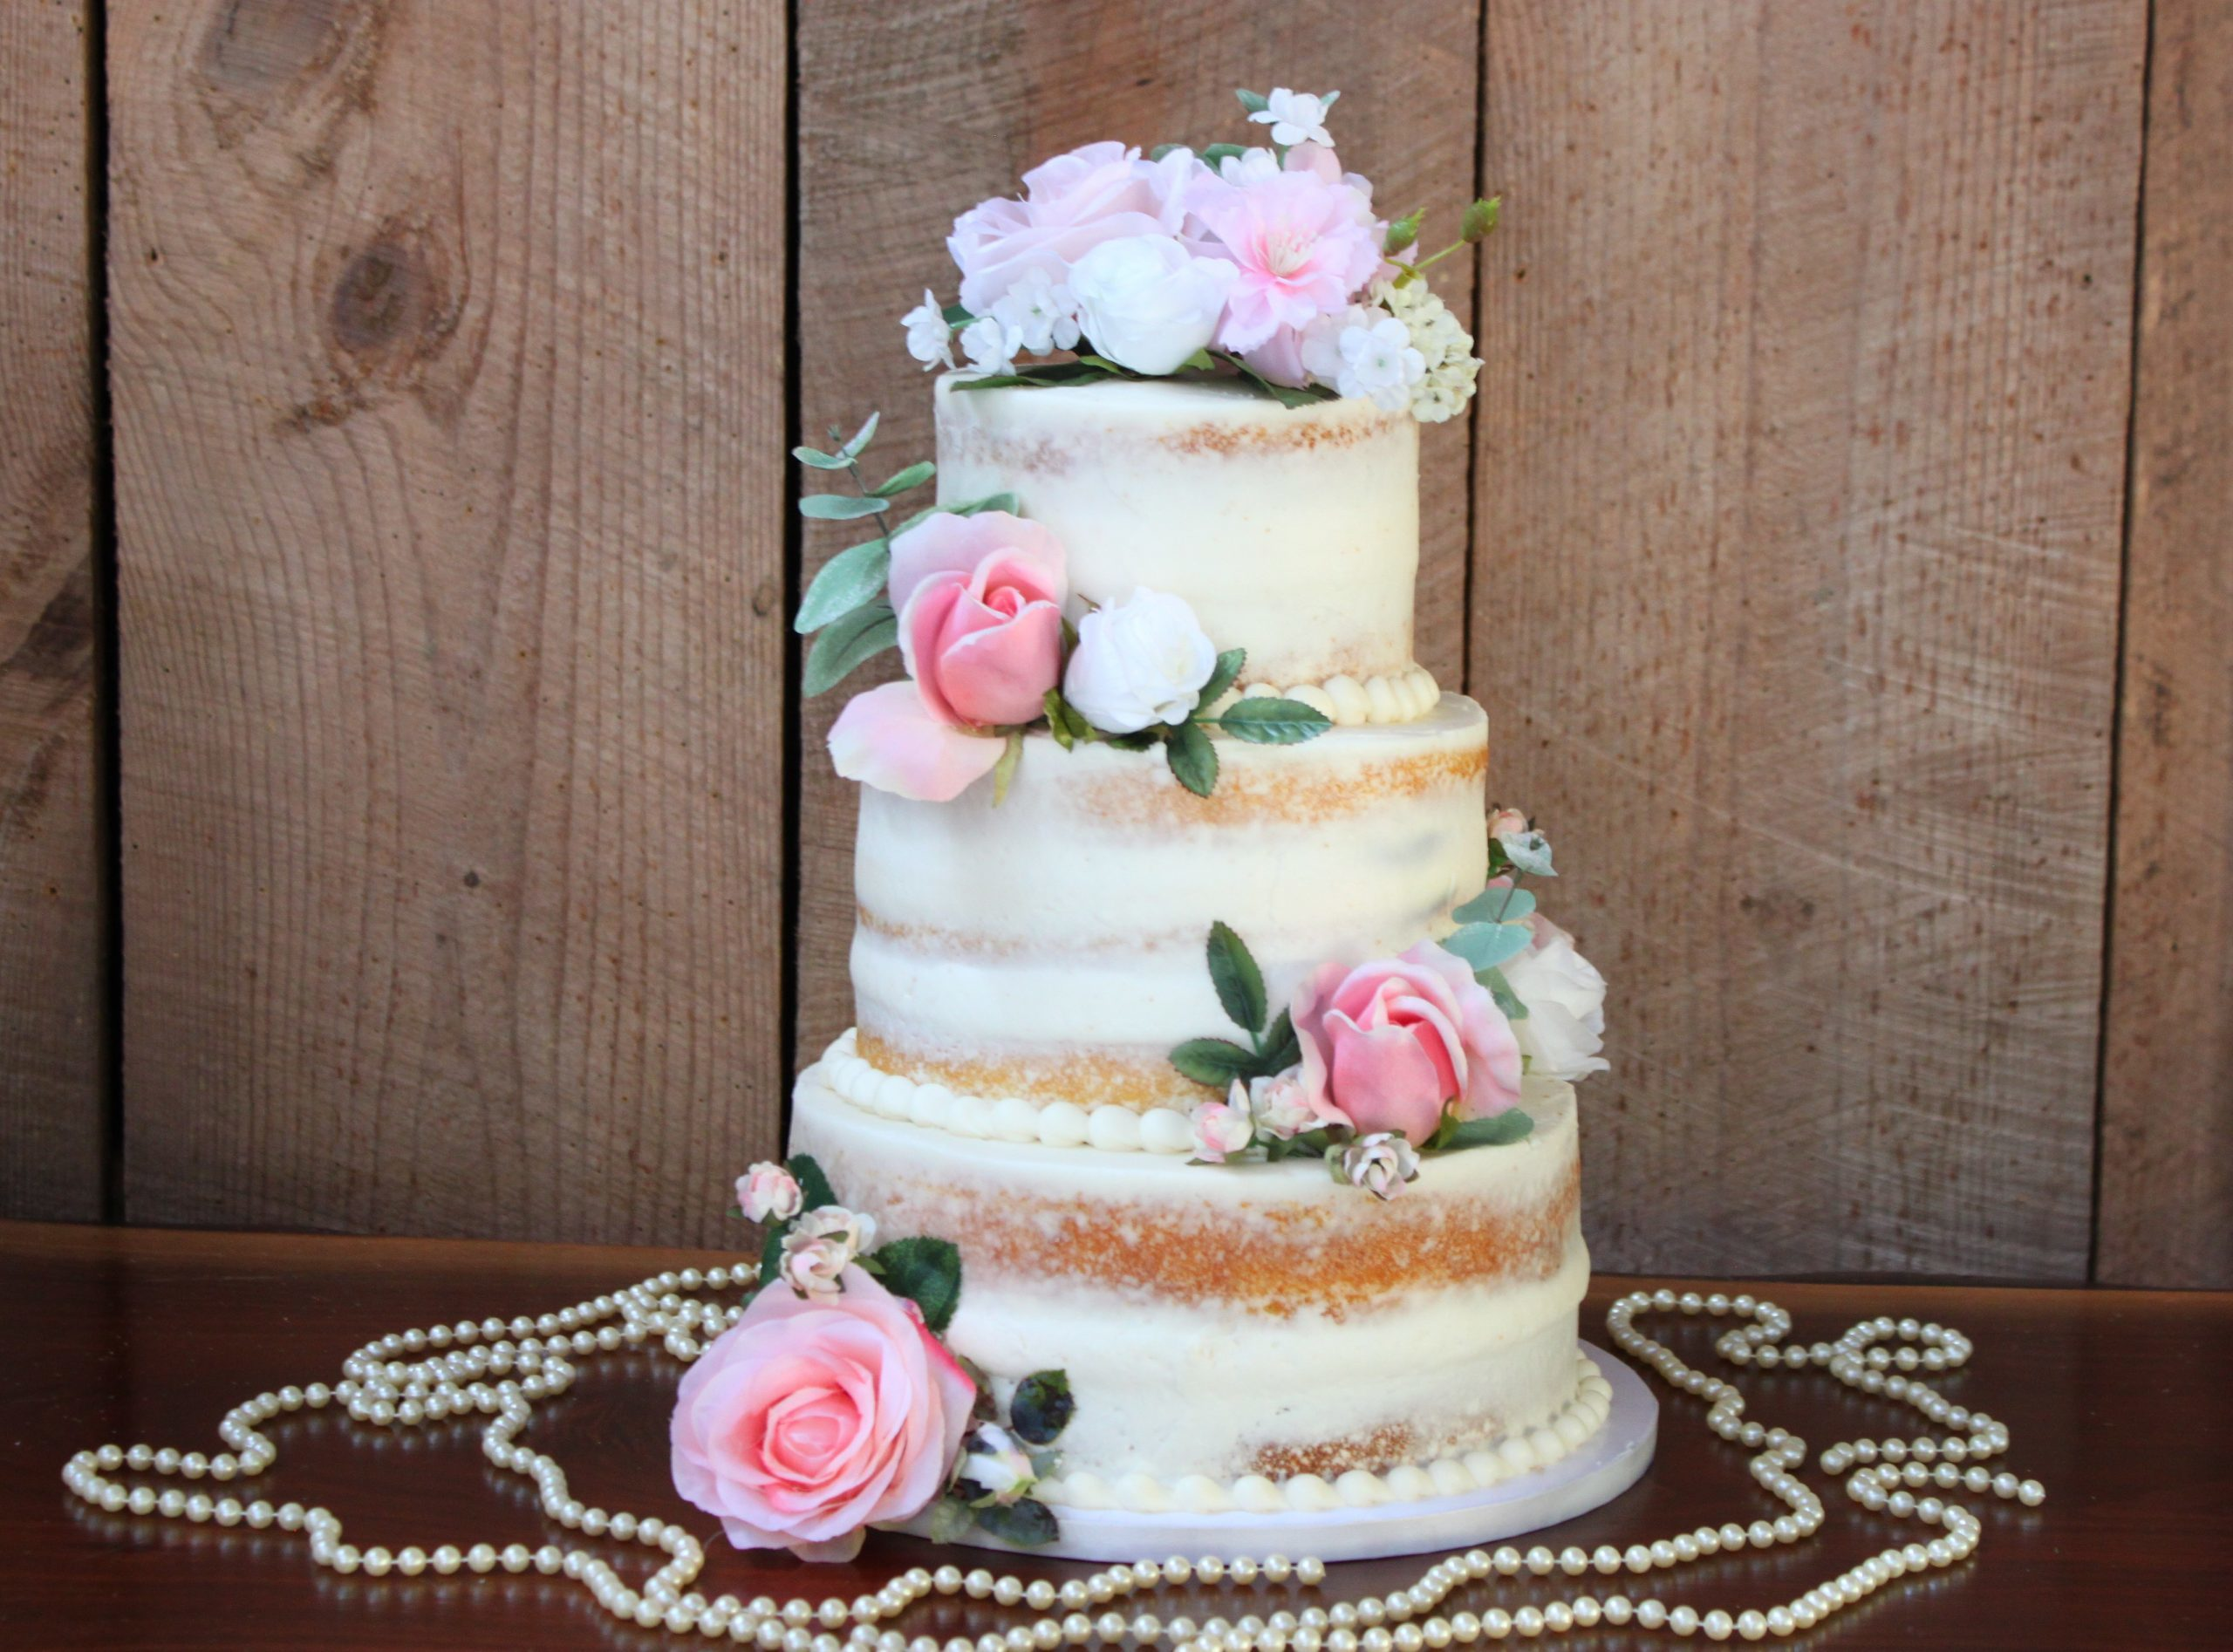 Naked Rose and Pearls Cake